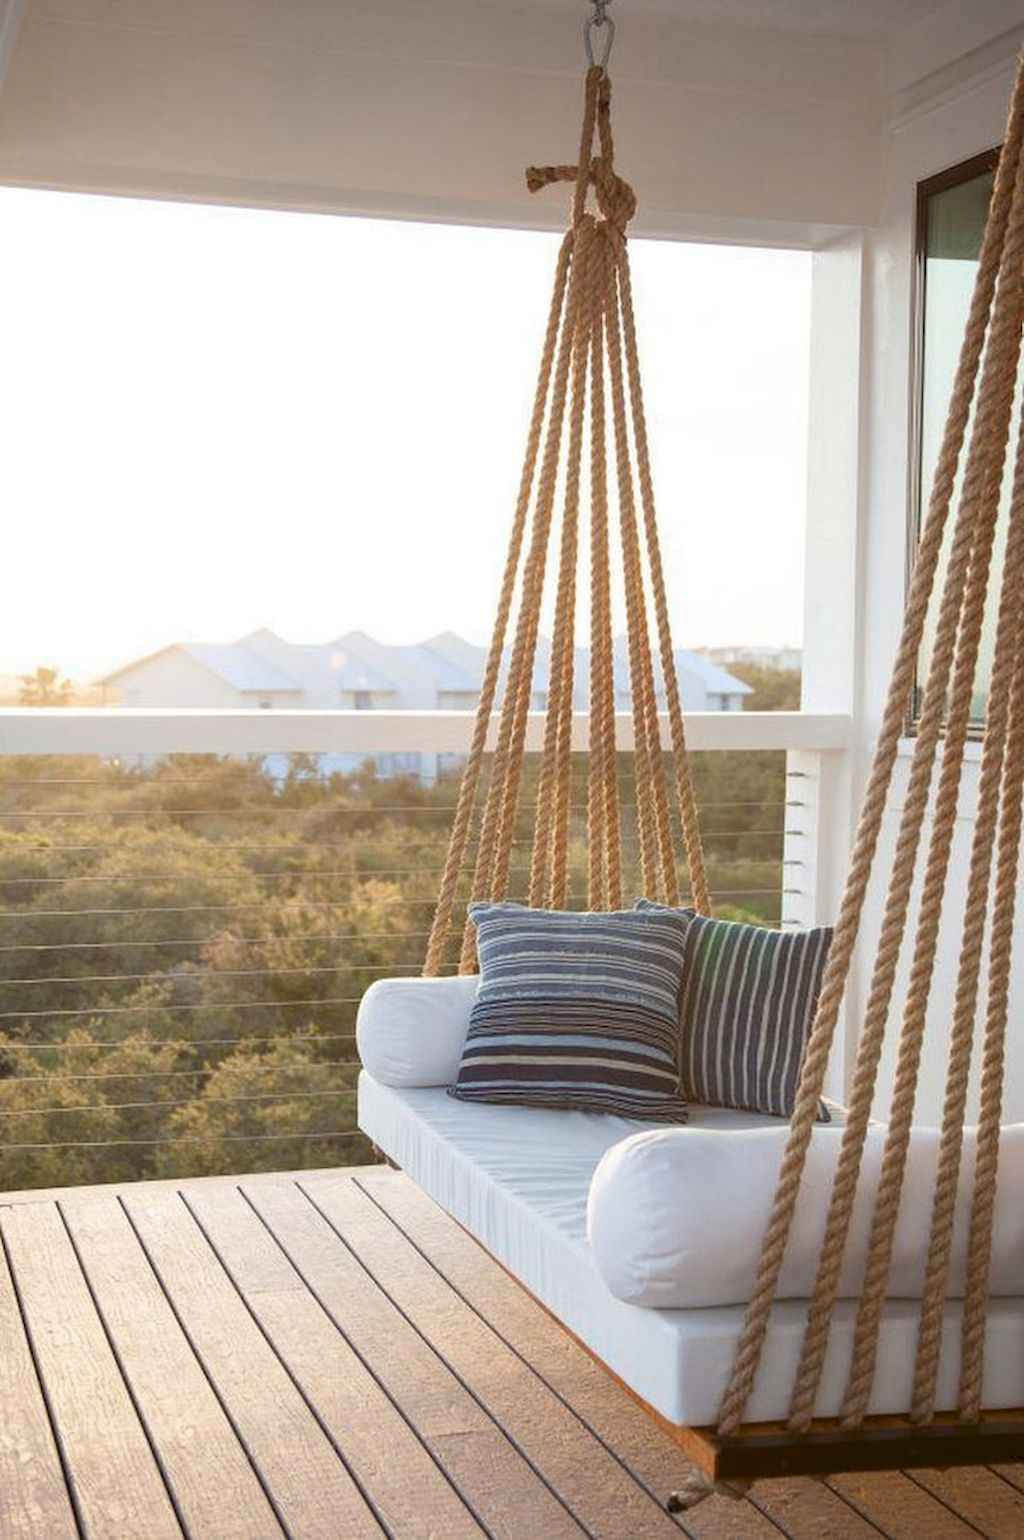 Cleverly diy porch patio decorating ideas (14)